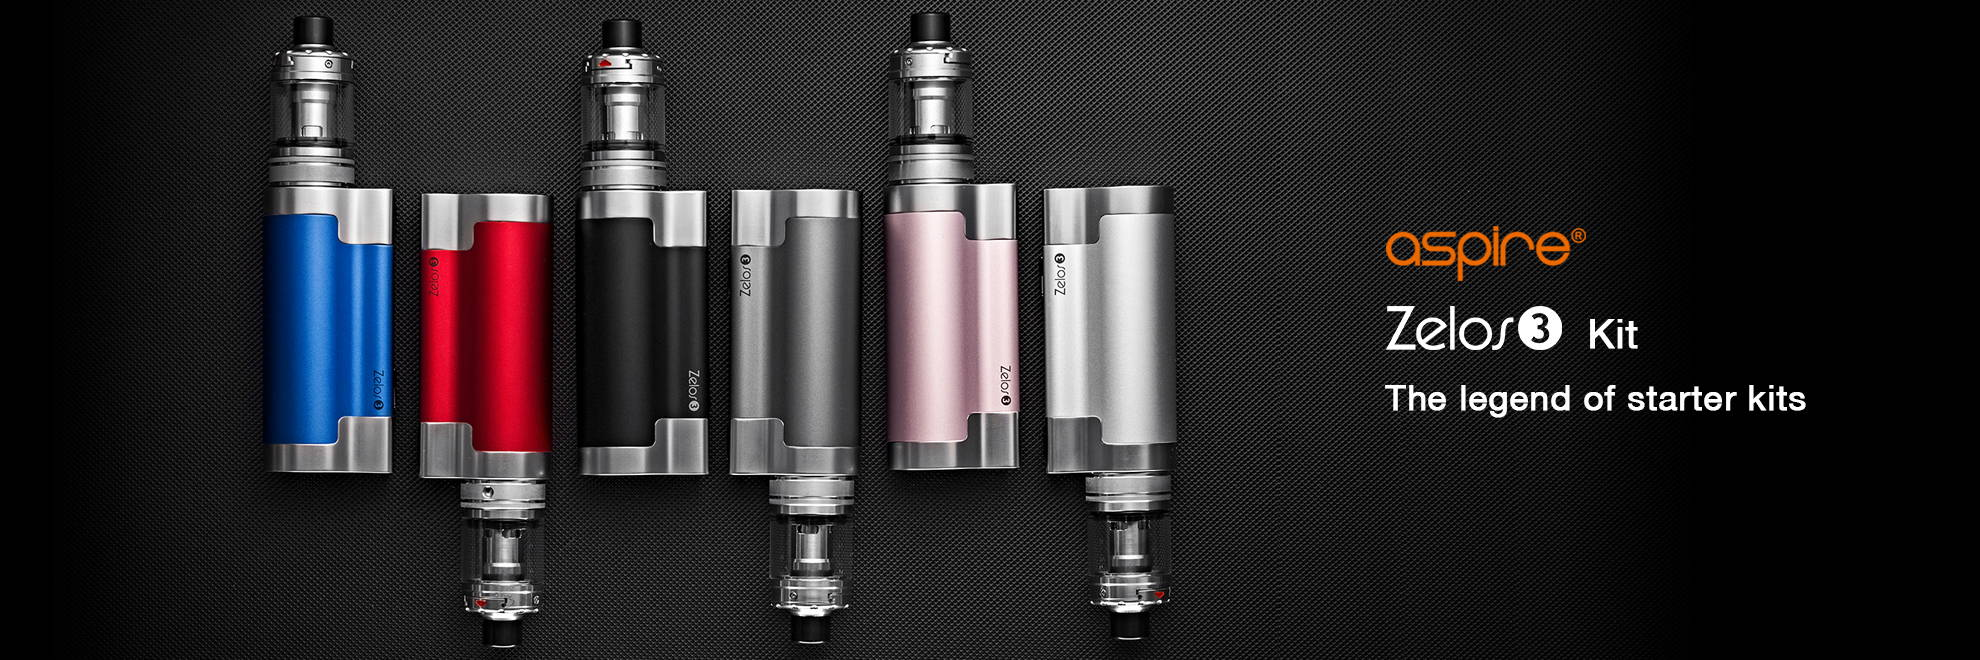 The Aspire Zelos is a legend in starter kit technology, and with the Zelos 3 comes a much bigger battery and the Nautilus 3 tank!